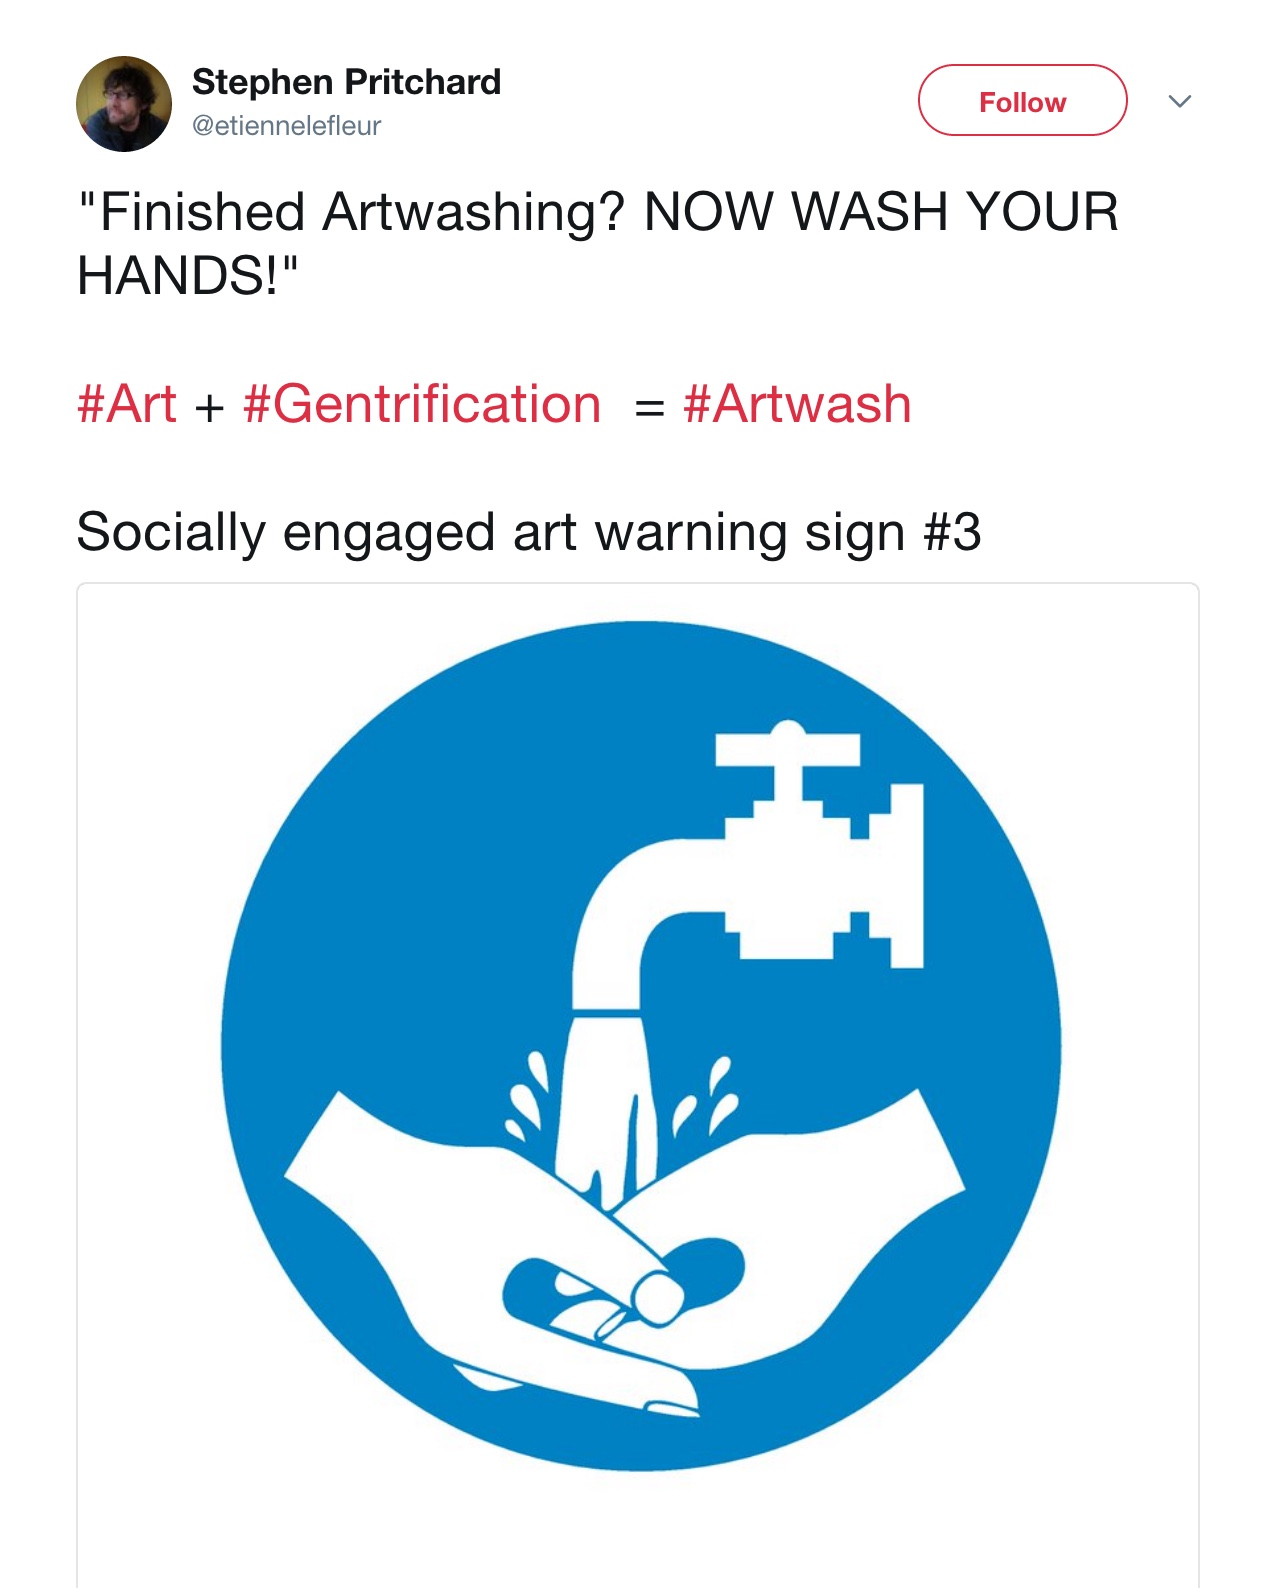 Image Artwashing hands Credit (on his Twitter age not sure if he is artist Stephen Pritchard@etiennelefleur PhD-Researcher-Art historian-Curator-Writer-Activist-Blogger-Community arts practitioner-Social practice-Anti art-Anti elitist-Praxis-Critical theory-Socialist